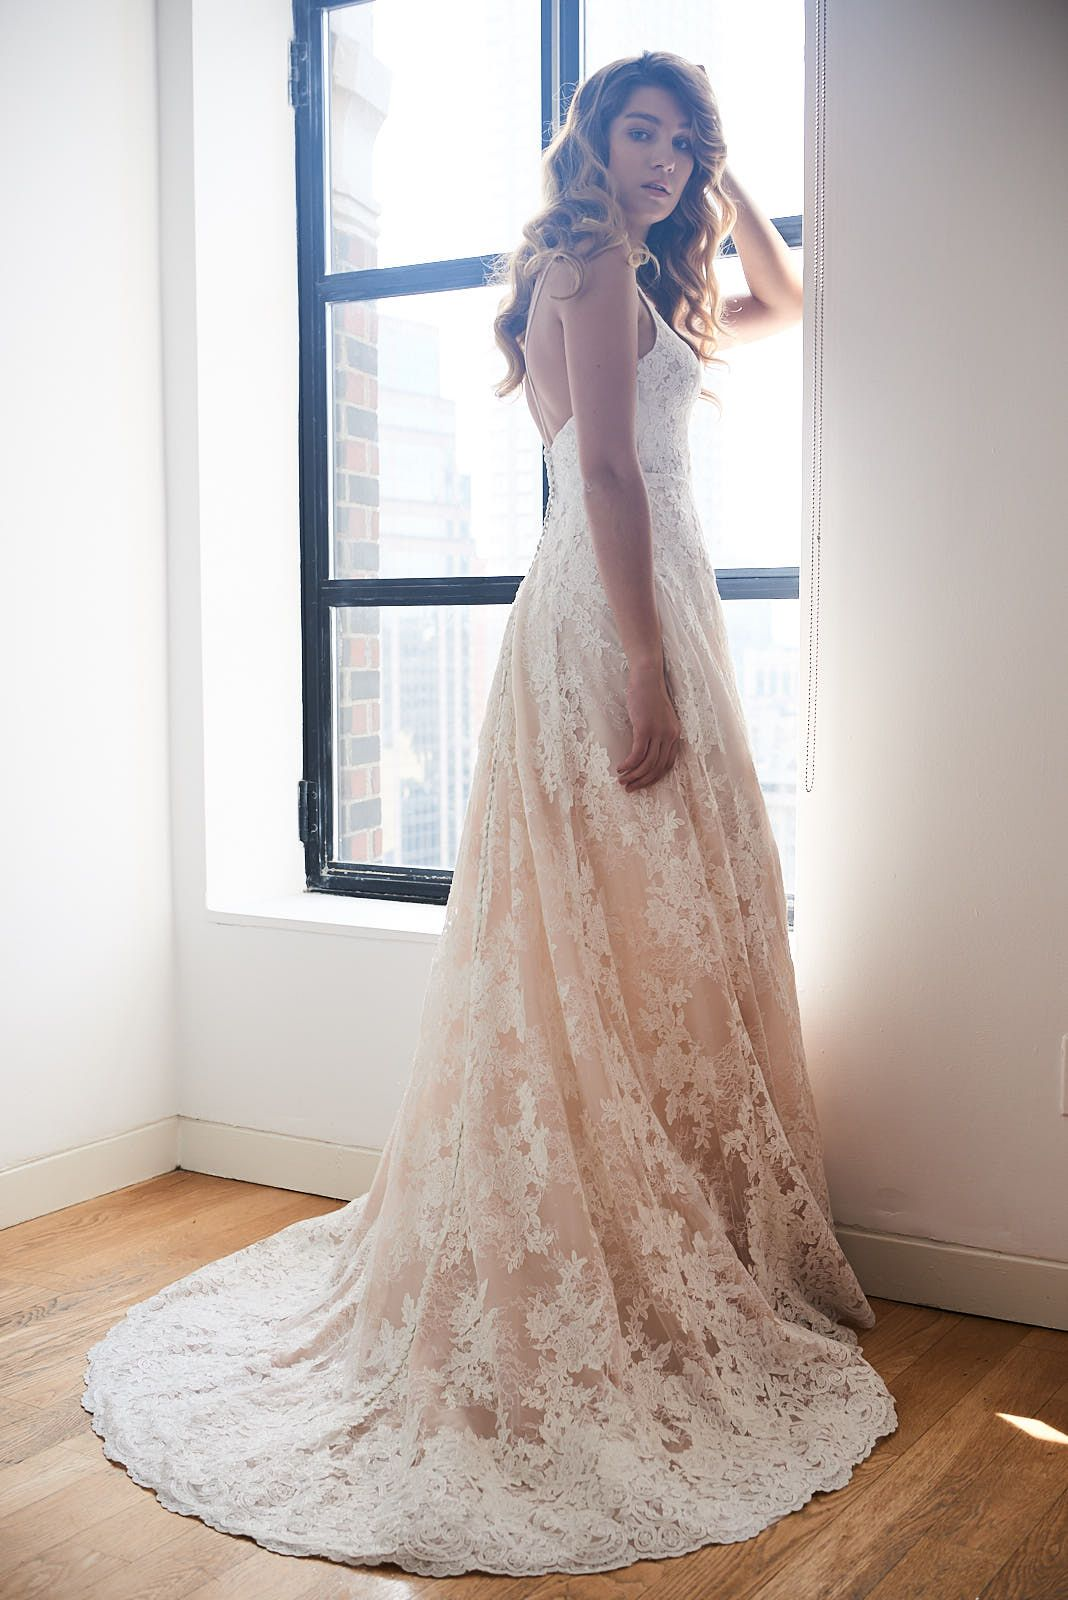 Red lace wedding dress october 2018 Maia wedding dress by Kelly Faetanini  Chantilly lace and